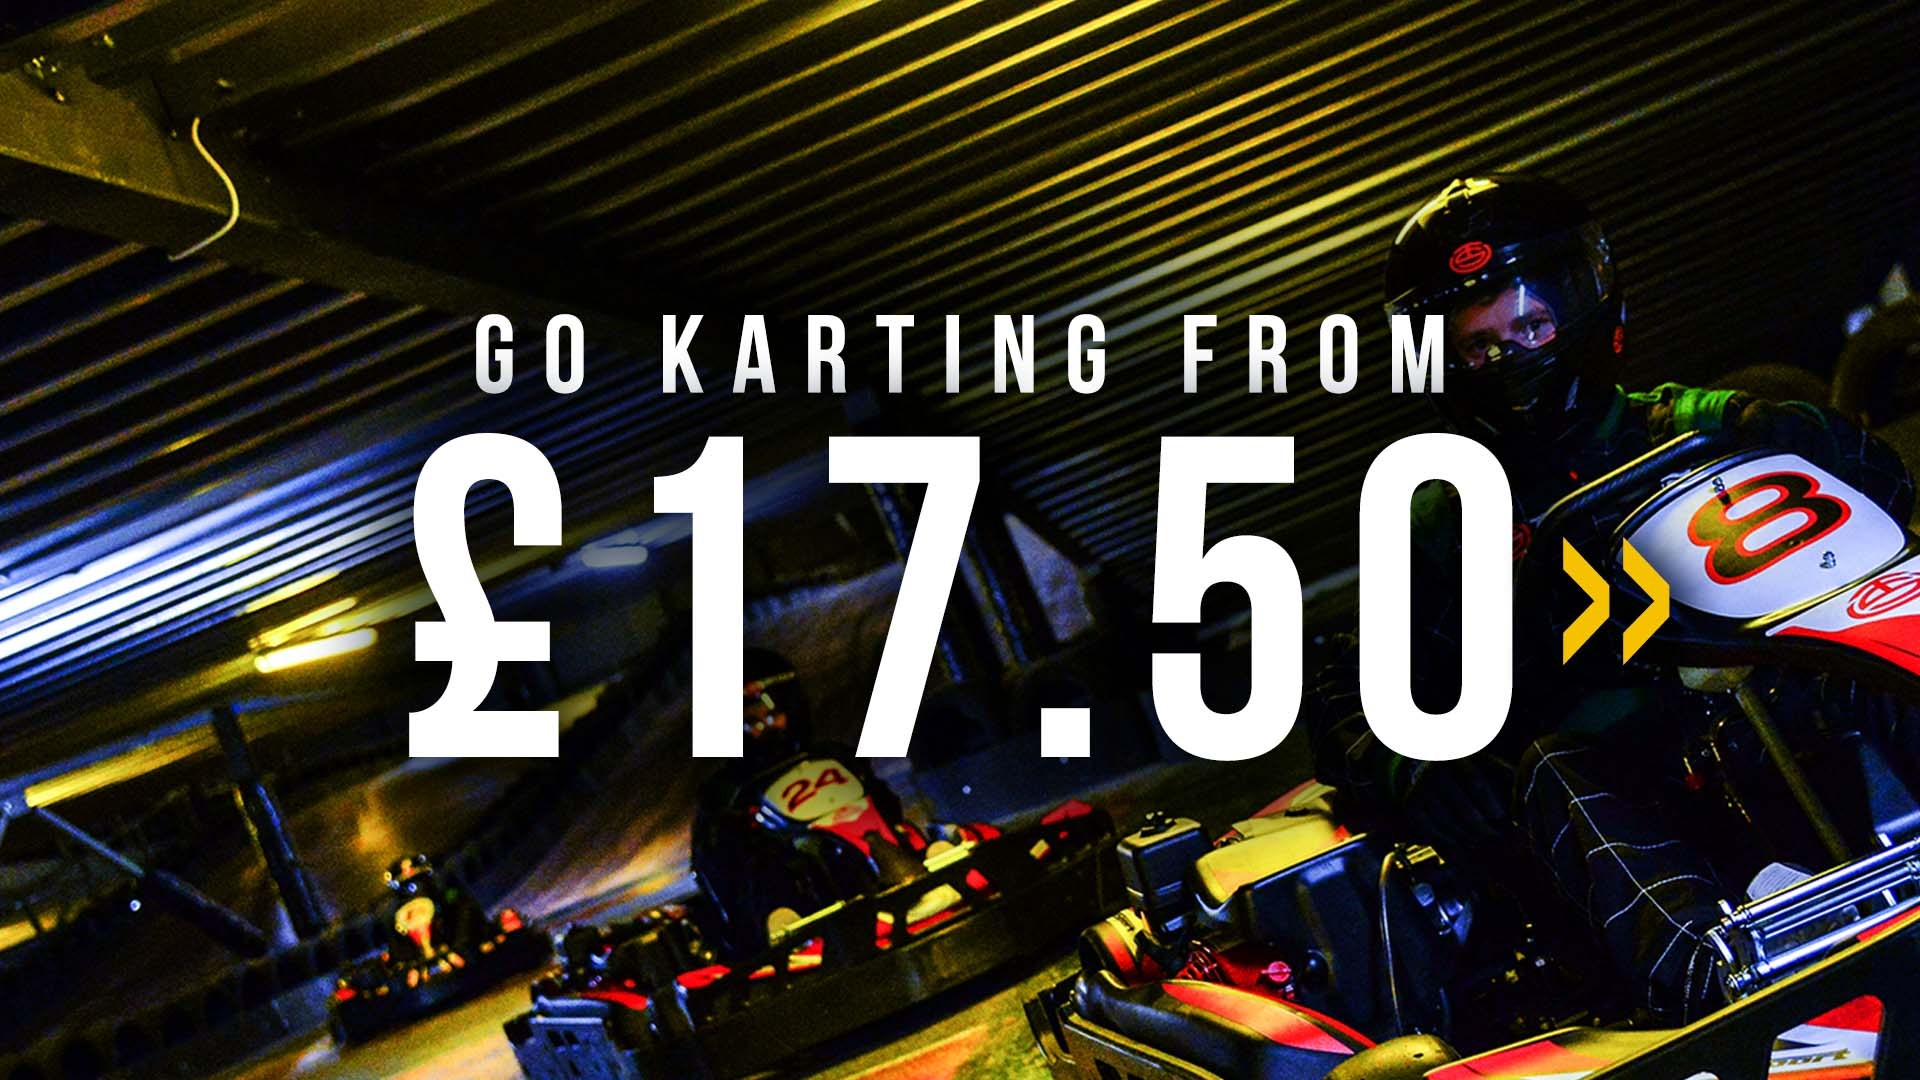 TeamSport_Mitcham_Go_Karting_for_£17.50_Full_Width_Offer_Banner_1920x1080-min.jpg